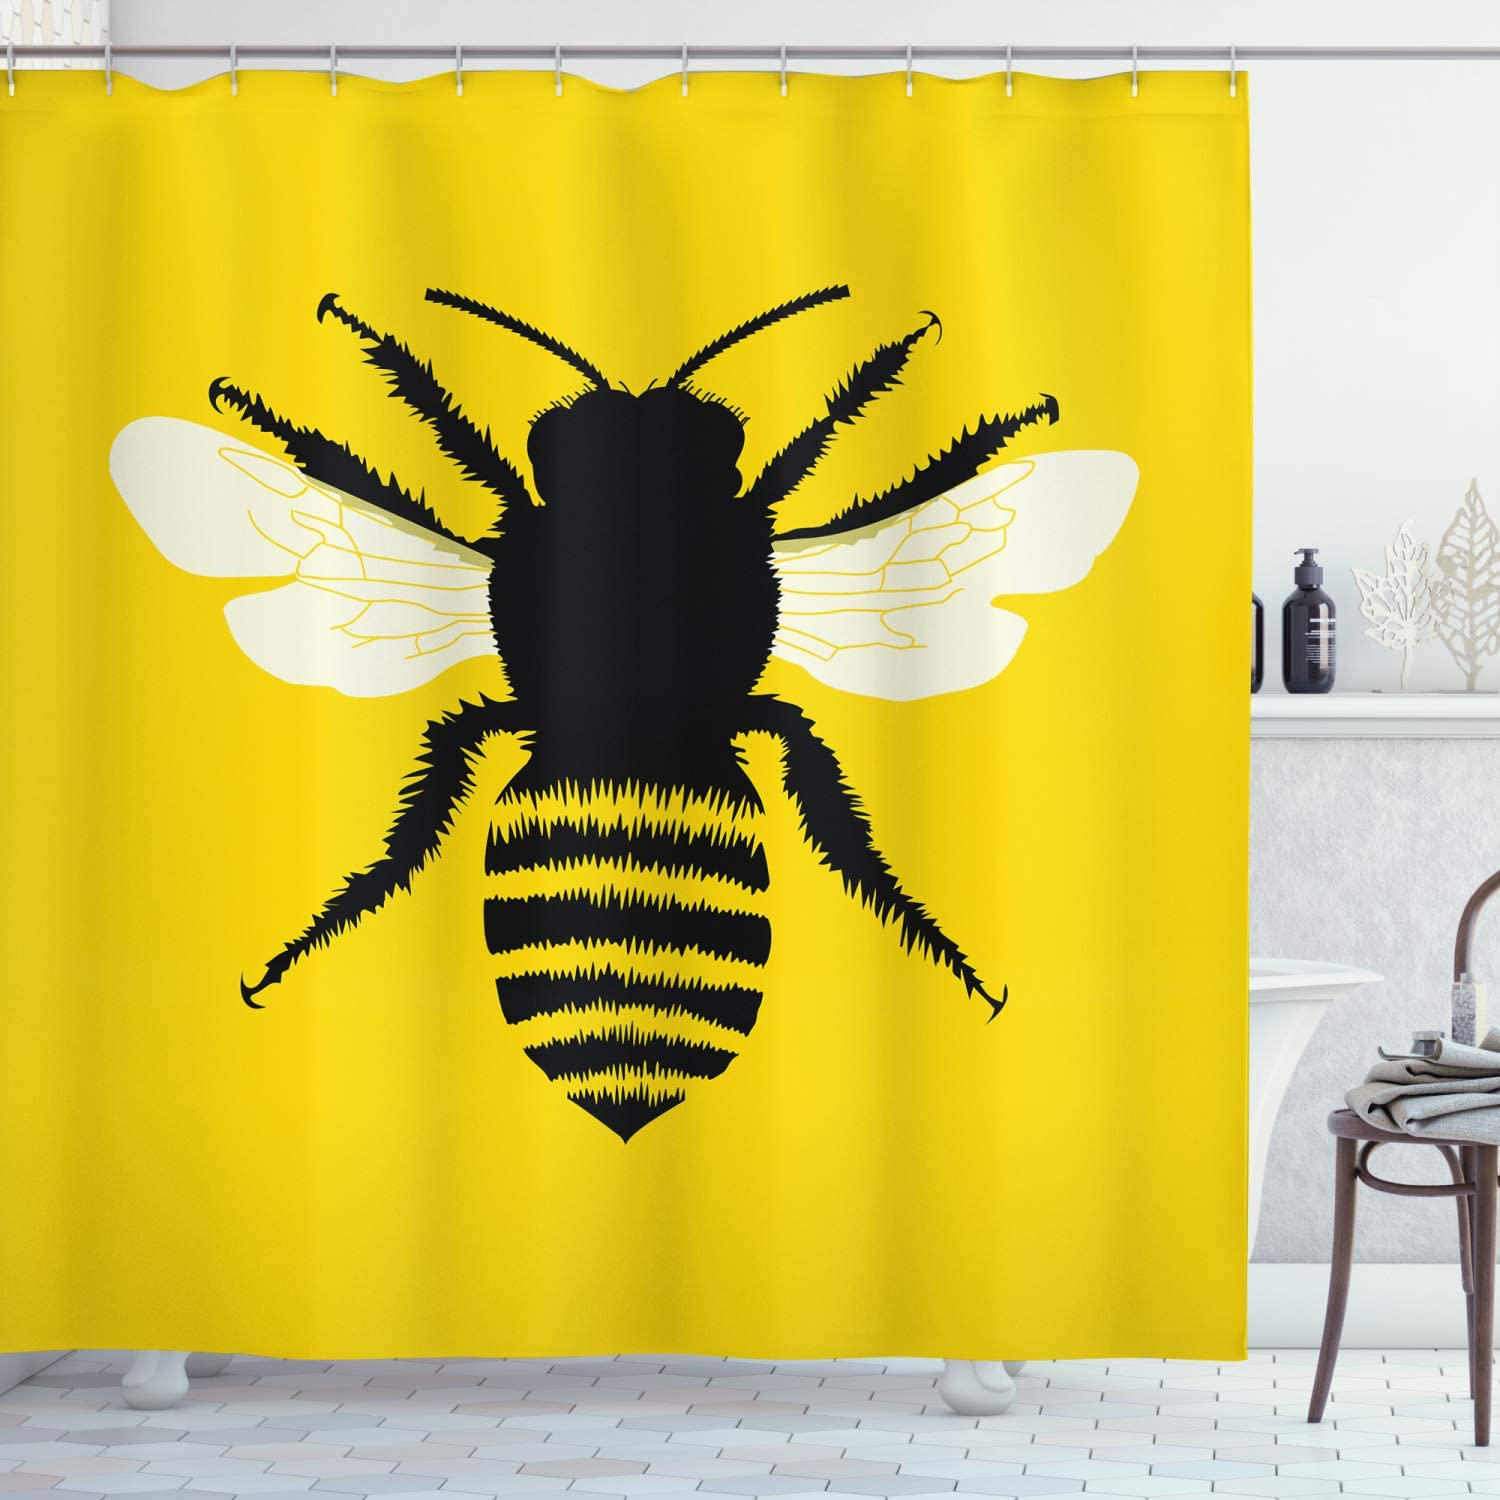 Ambesonne Queen Bee Shower Curtain, Silhouette of Honeybee with Stripped Design and Detailed Wings Abstract, Cloth Fabric Bathroom Decor Set with Hooks, 70